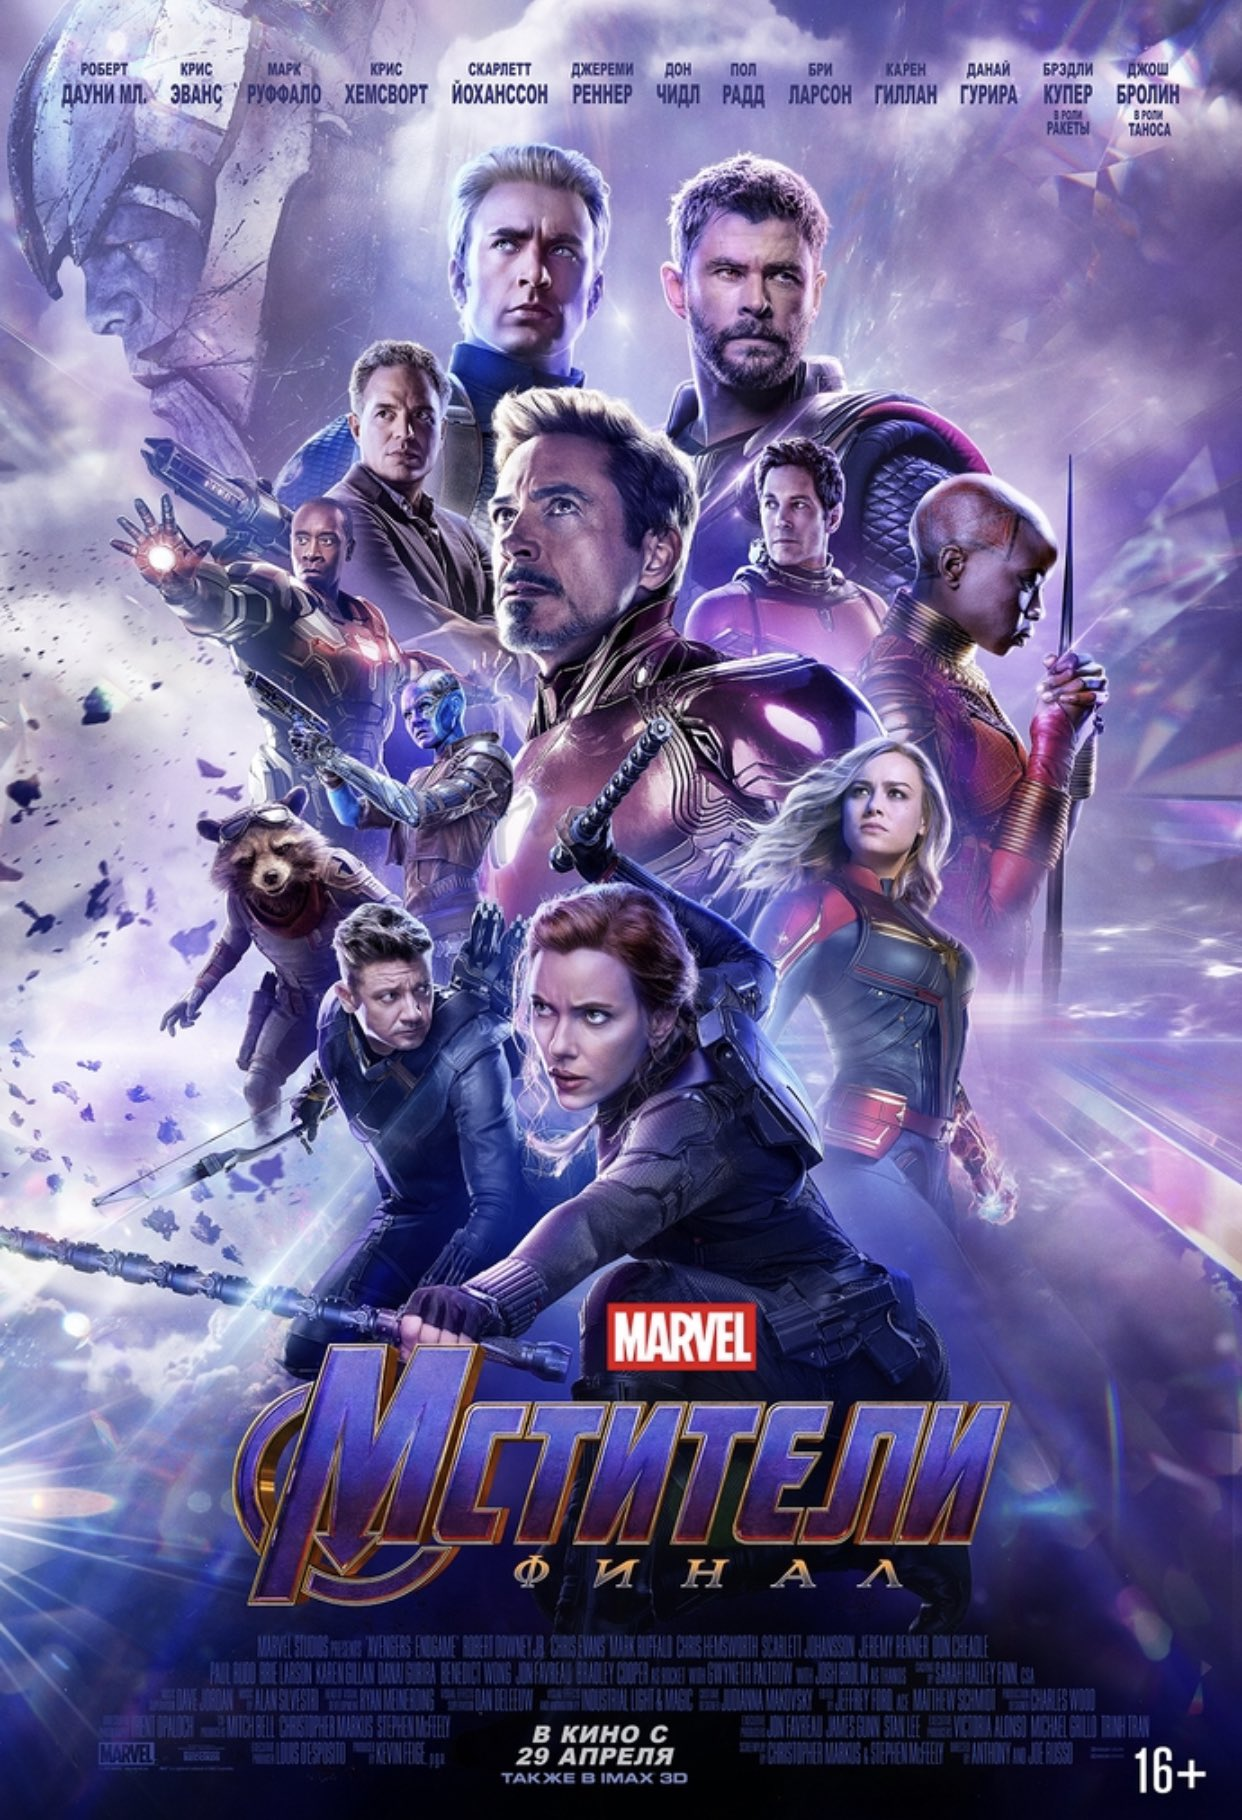 Avengers Endgame Russia International Poster